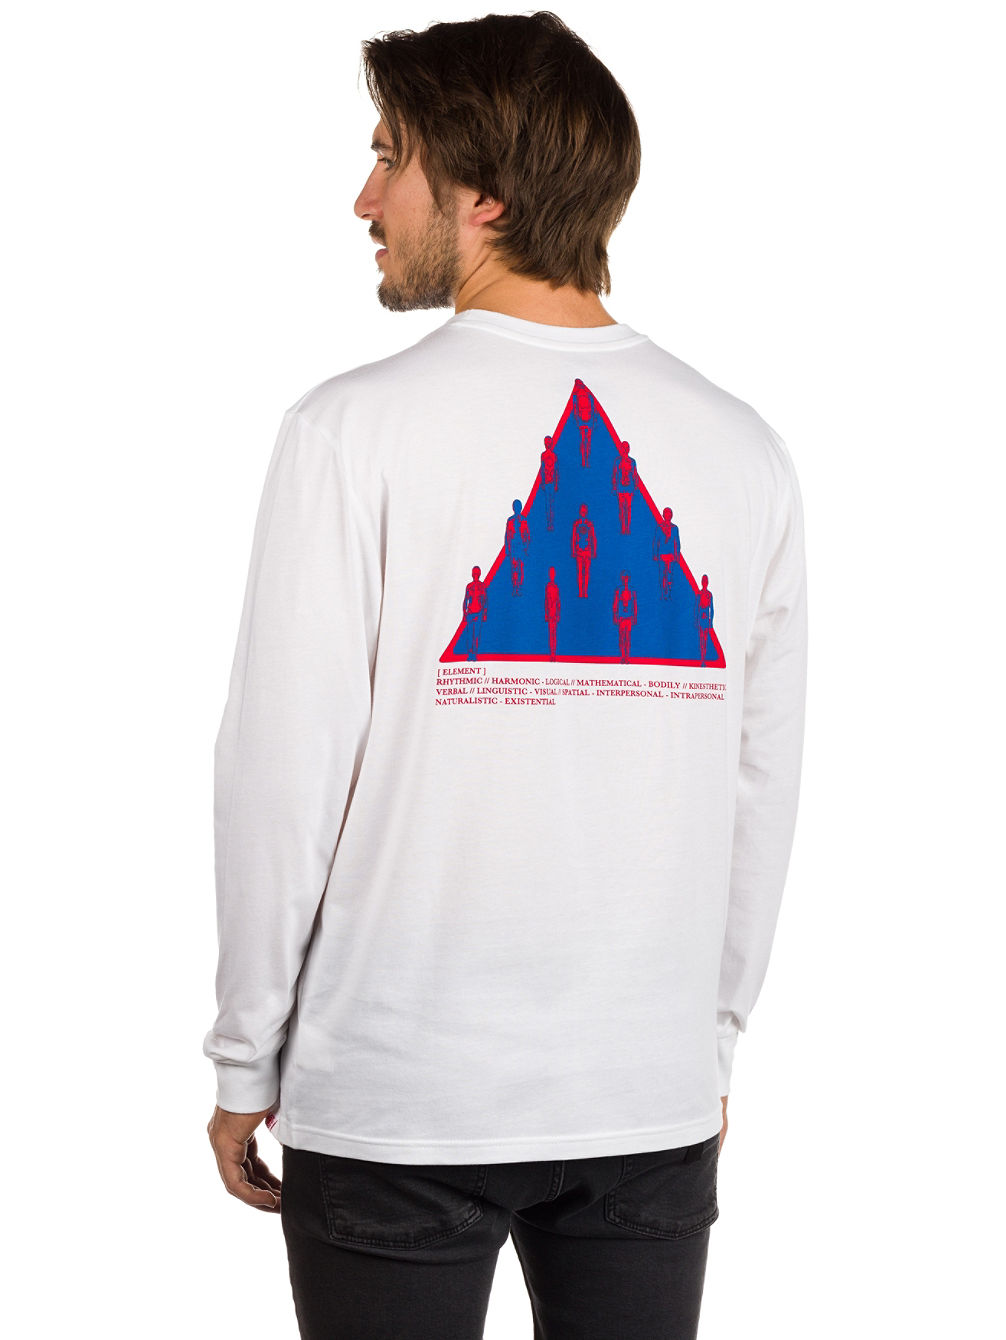 Infared T-Shirt LS